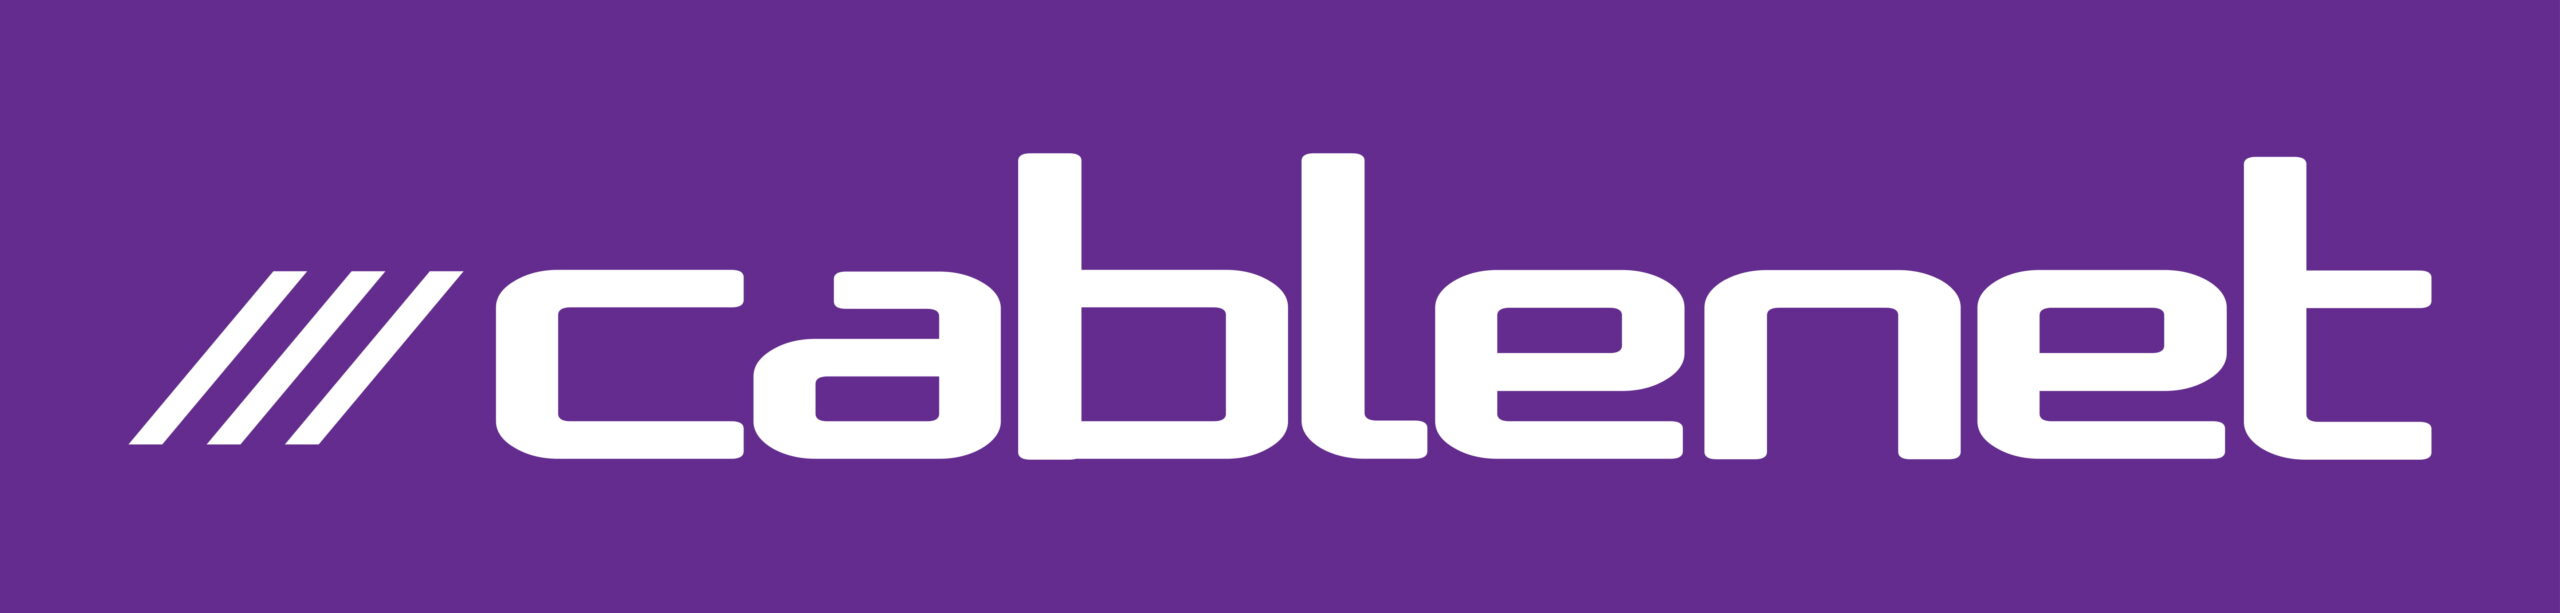 Cablenet_logo_purple_square-1